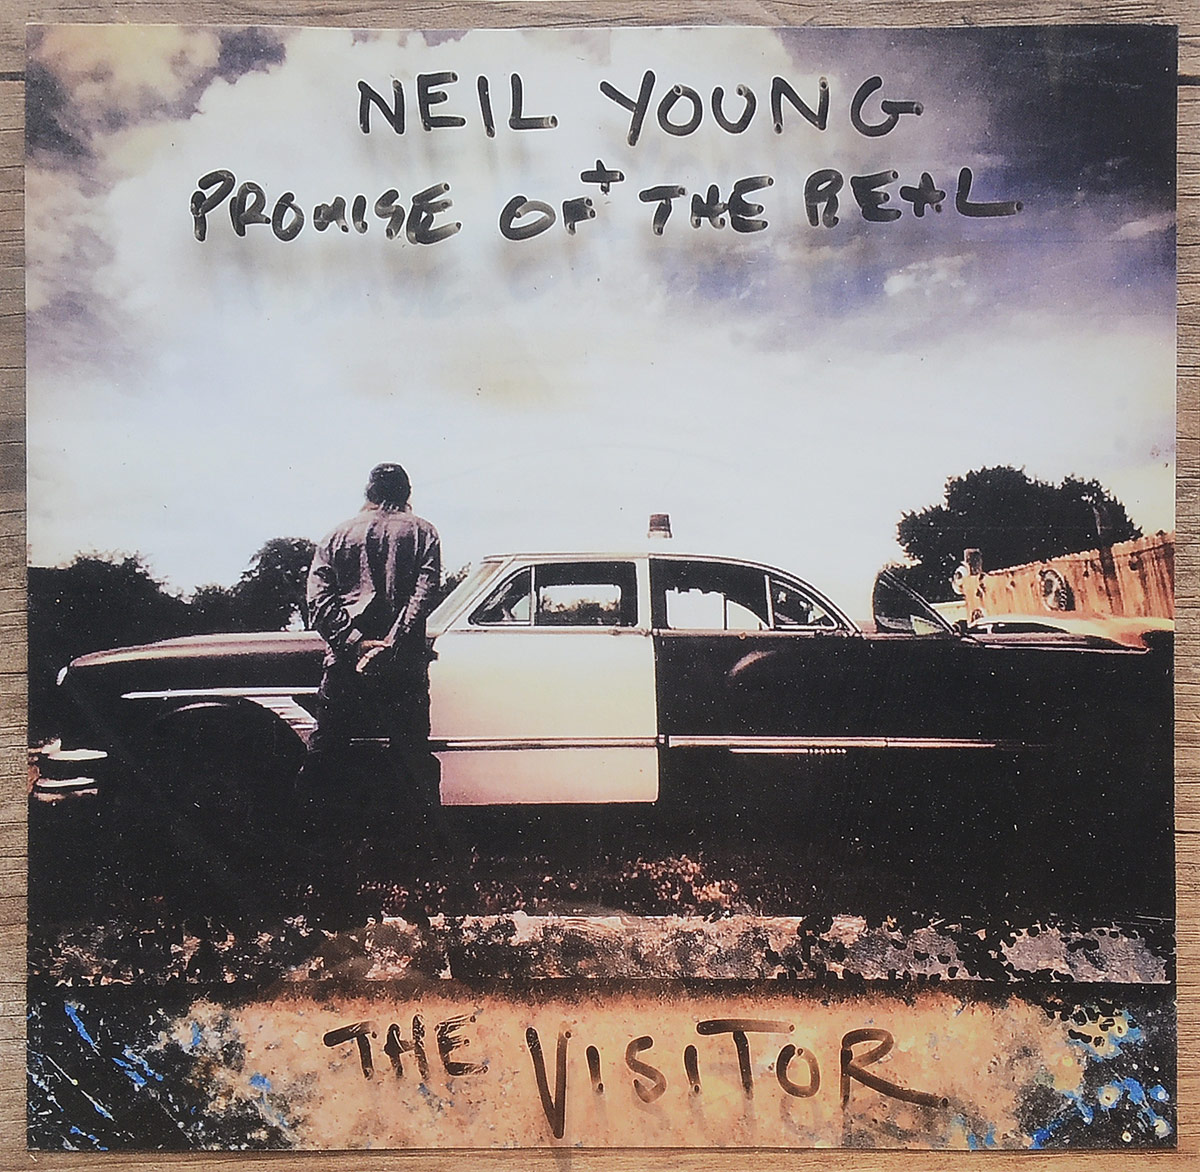 лучшая цена Нил Янг,Promise Of The Real Neil Young, Promise Of The Real. The Visitor (2 LP)